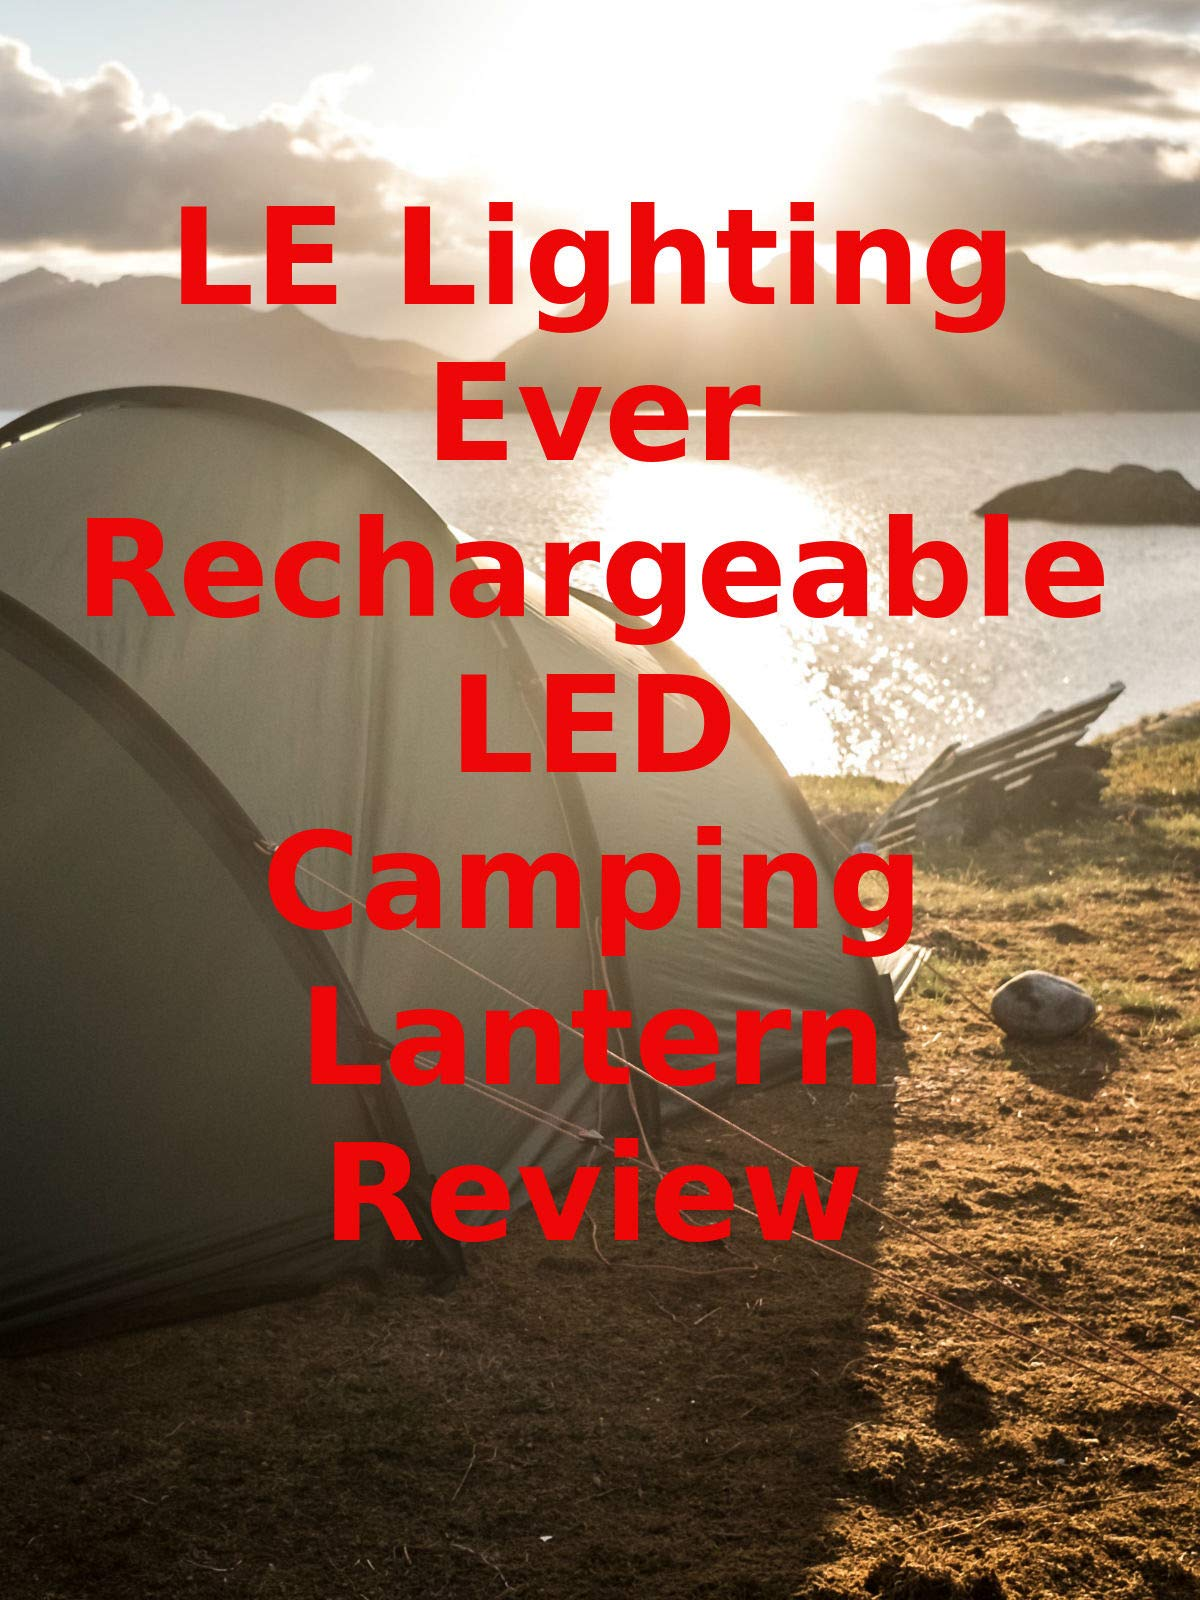 Review: LE Lighting Ever Rechargeable LED Camping Lantern Review on Amazon Prime Video UK